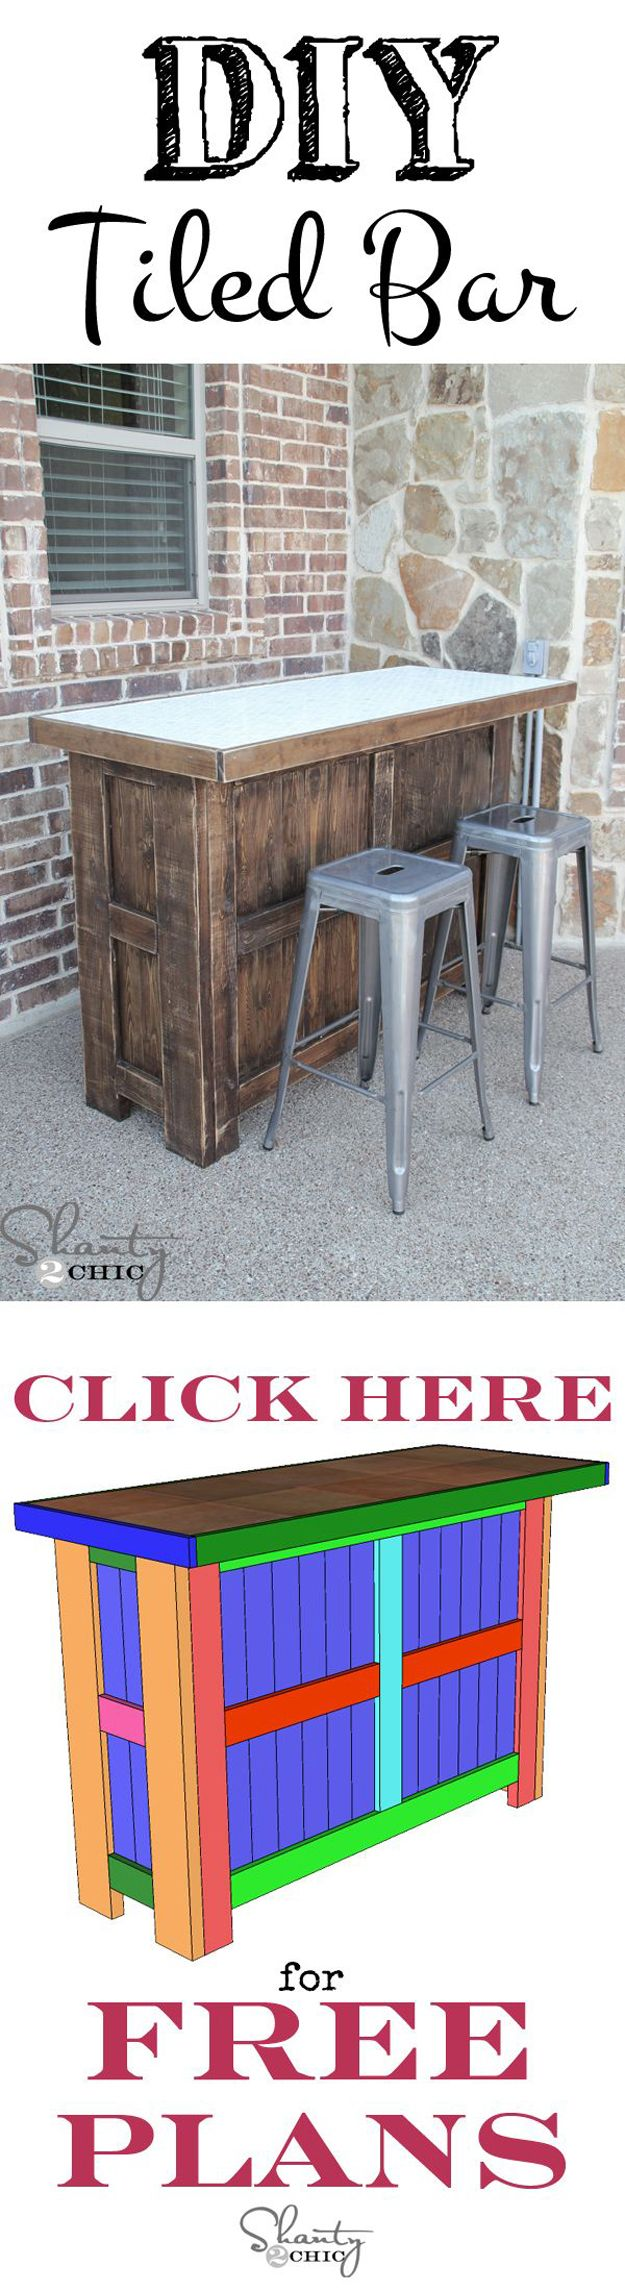 backyard furniture projects you can diy deck barpatio - Patio Bar Ideas